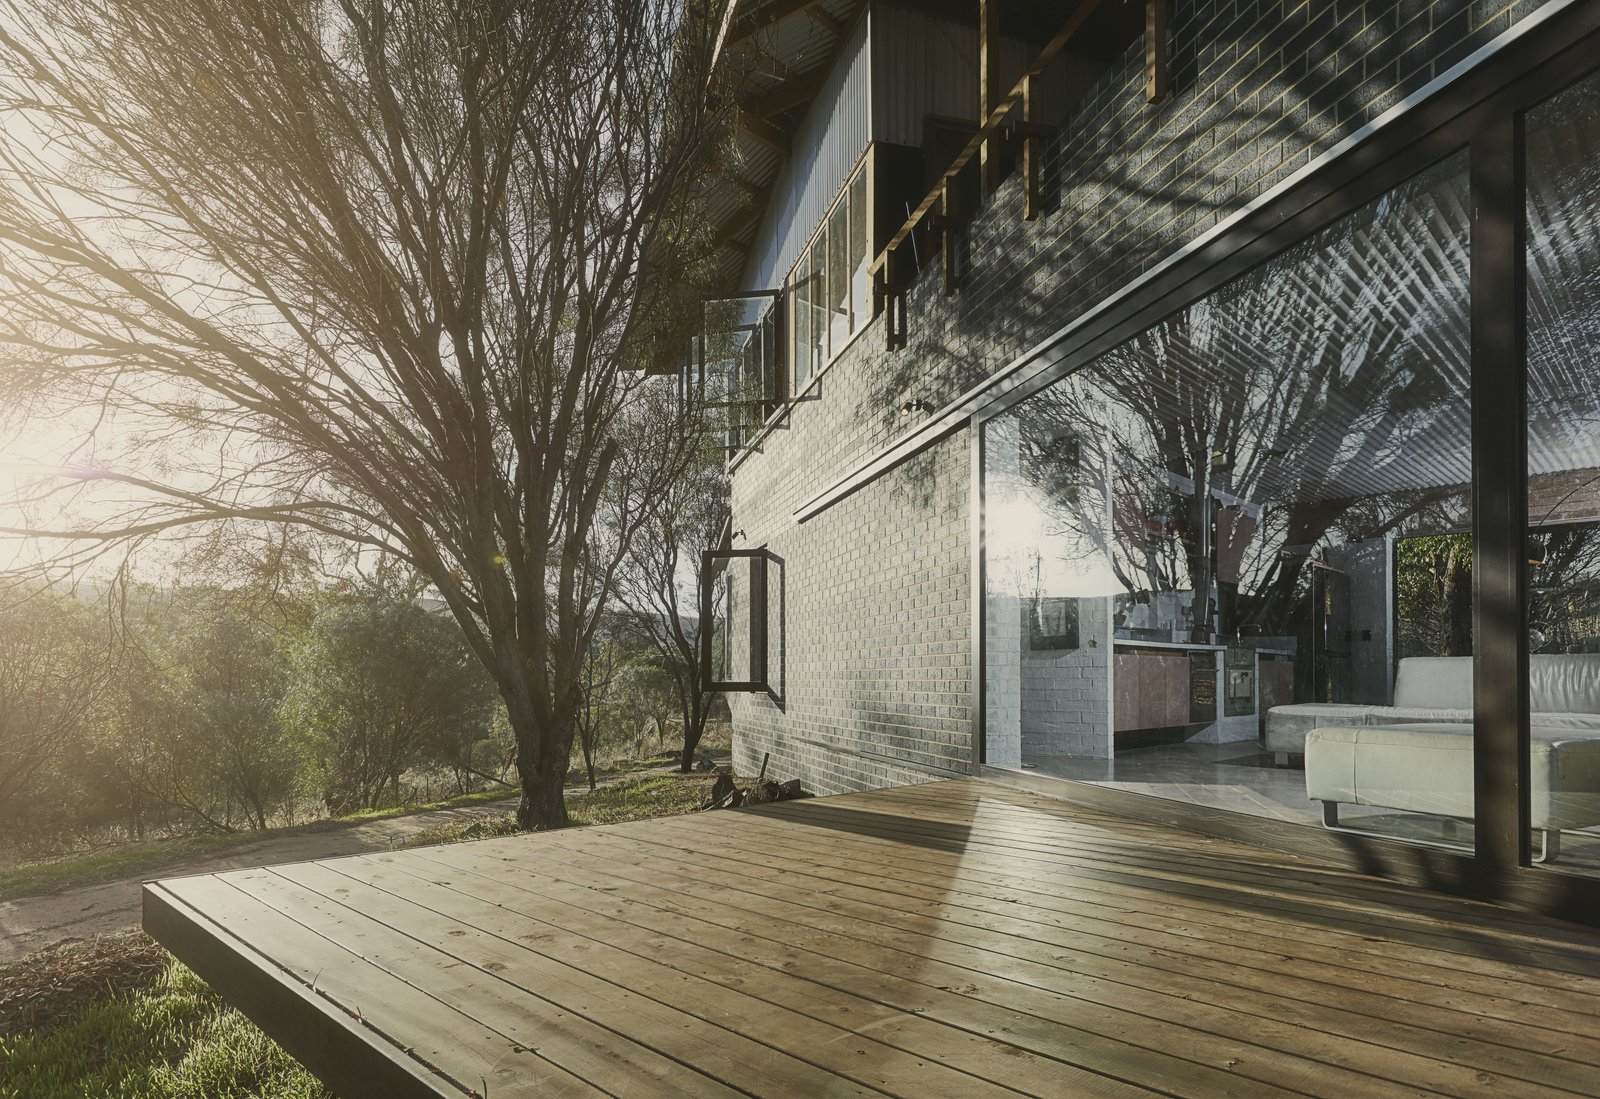 A Workshop - Toodyay Shack  Toodyay Shack by A Workshop - Paul Wakelam Architect